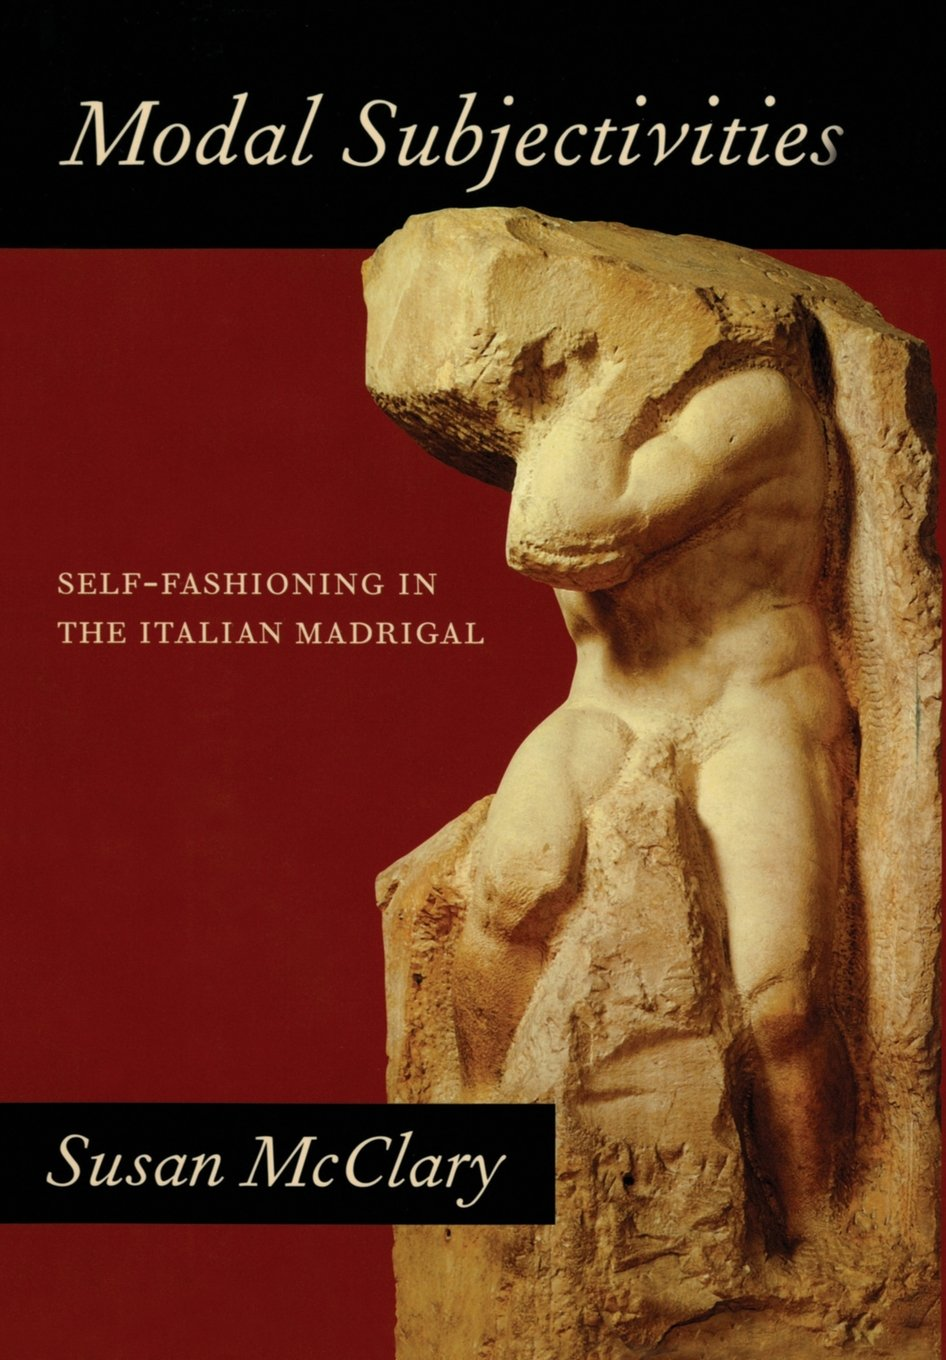 Read Online Modal Subjectivities: Self-Fashioning in the Italian Madrigal PDF